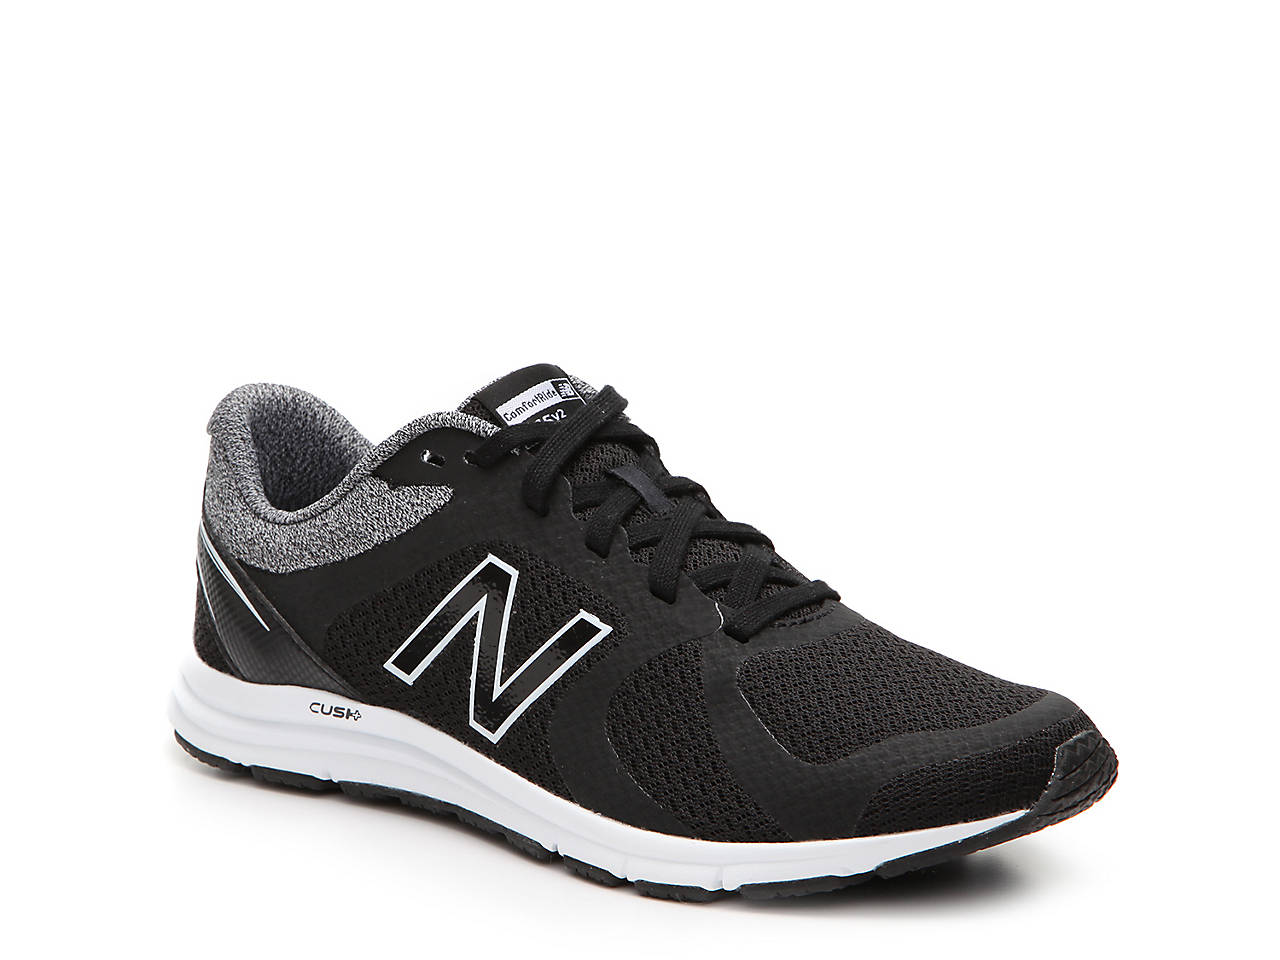 1a55b18f4aa New Balance 635 V2 Lightweight Running Shoe - Women s Women s Shoes ...